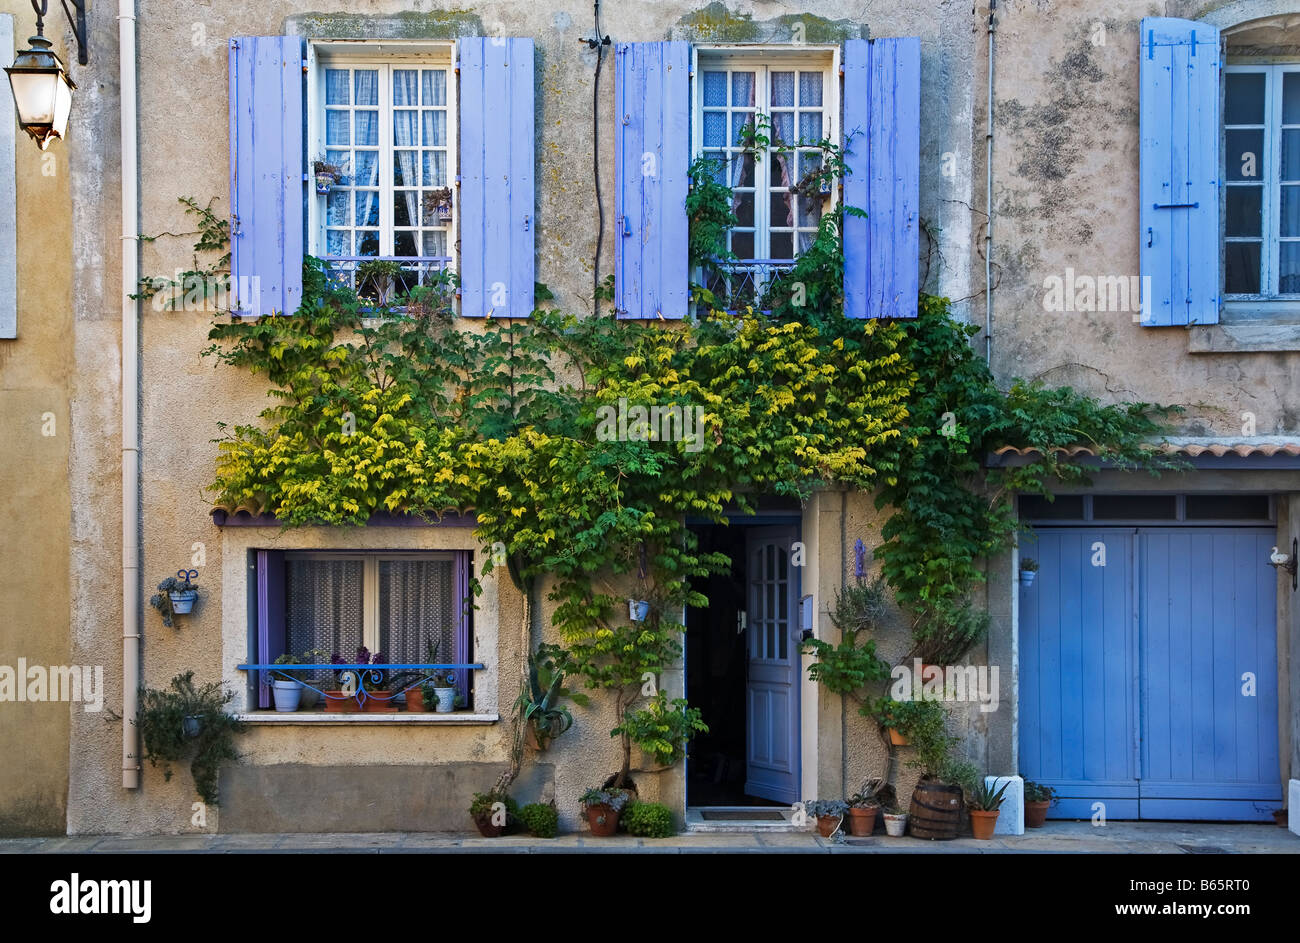 Traditional Old French Village House with Blue Shutters, Gruissan, Languedoc Roussillon, France - Stock Image